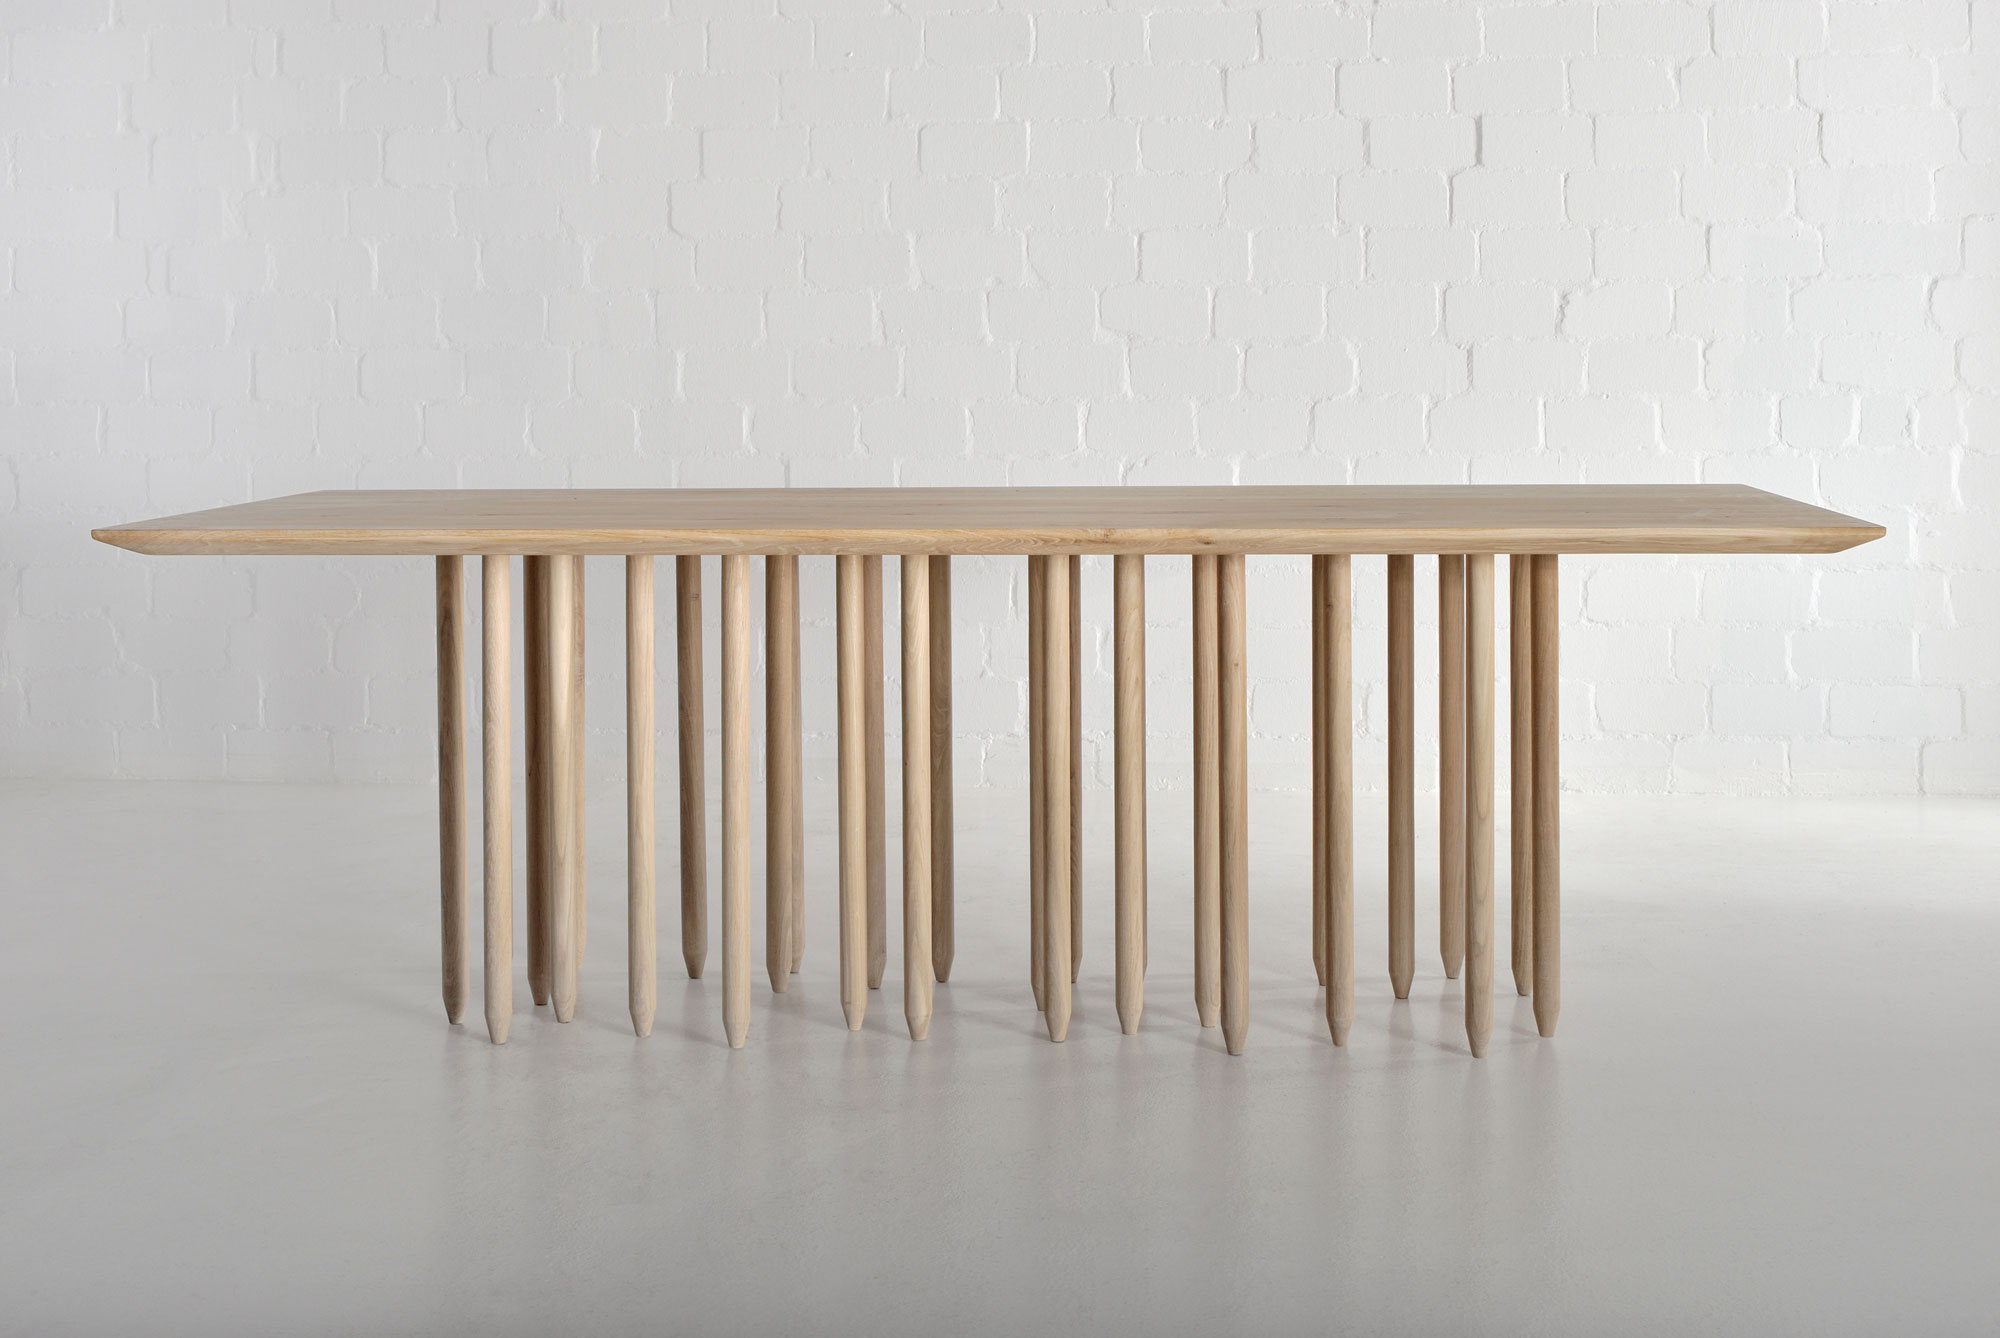 Designer Solid Wood Table STILUS 4347 custom made in solid wood by vitamin design